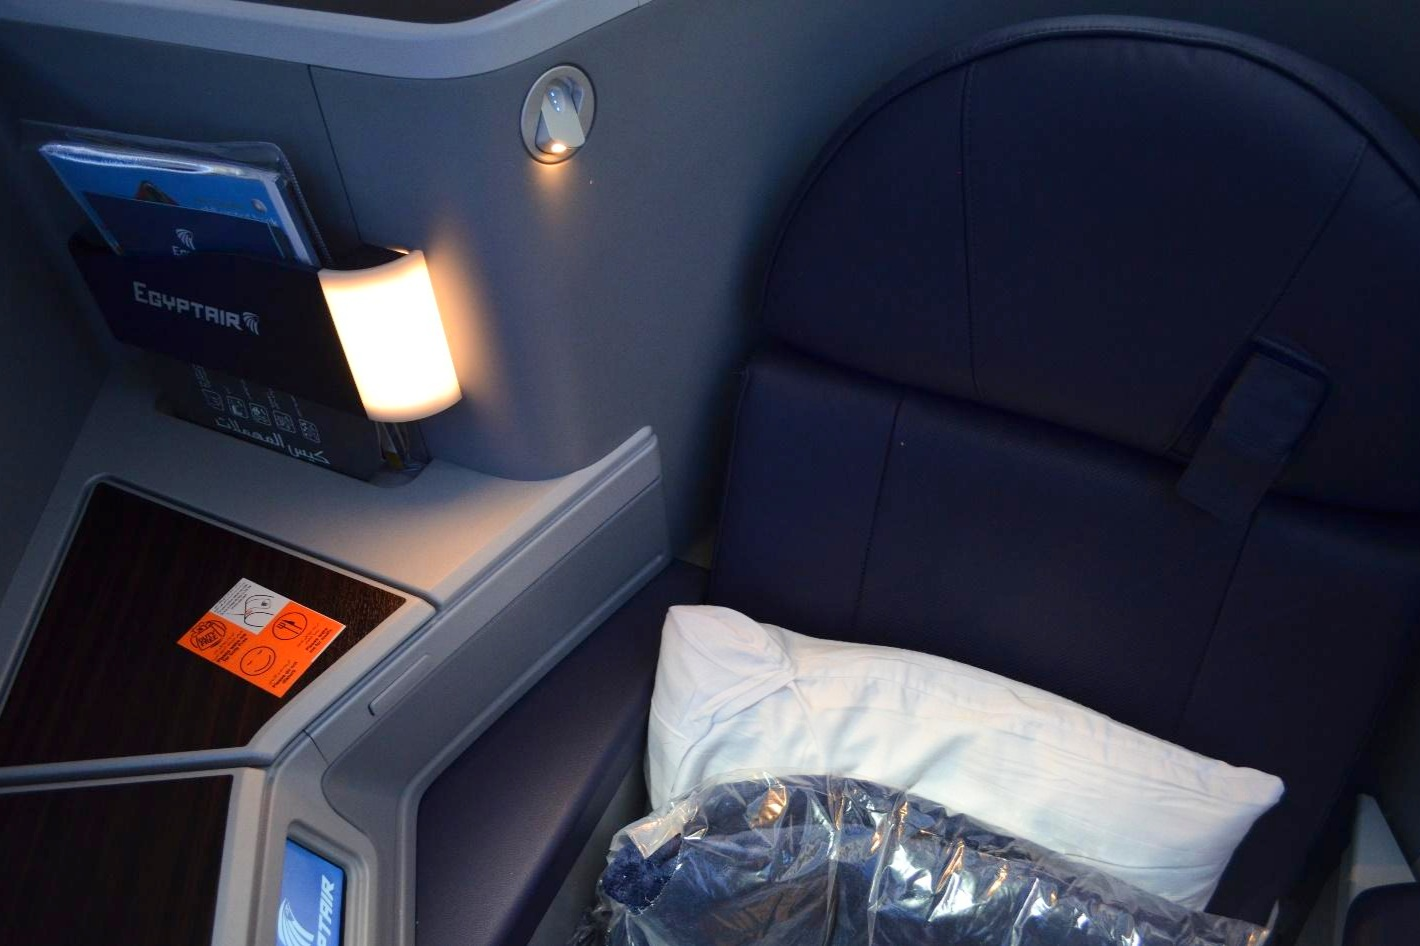 EgyptAir 787 business class – In-seat lamp